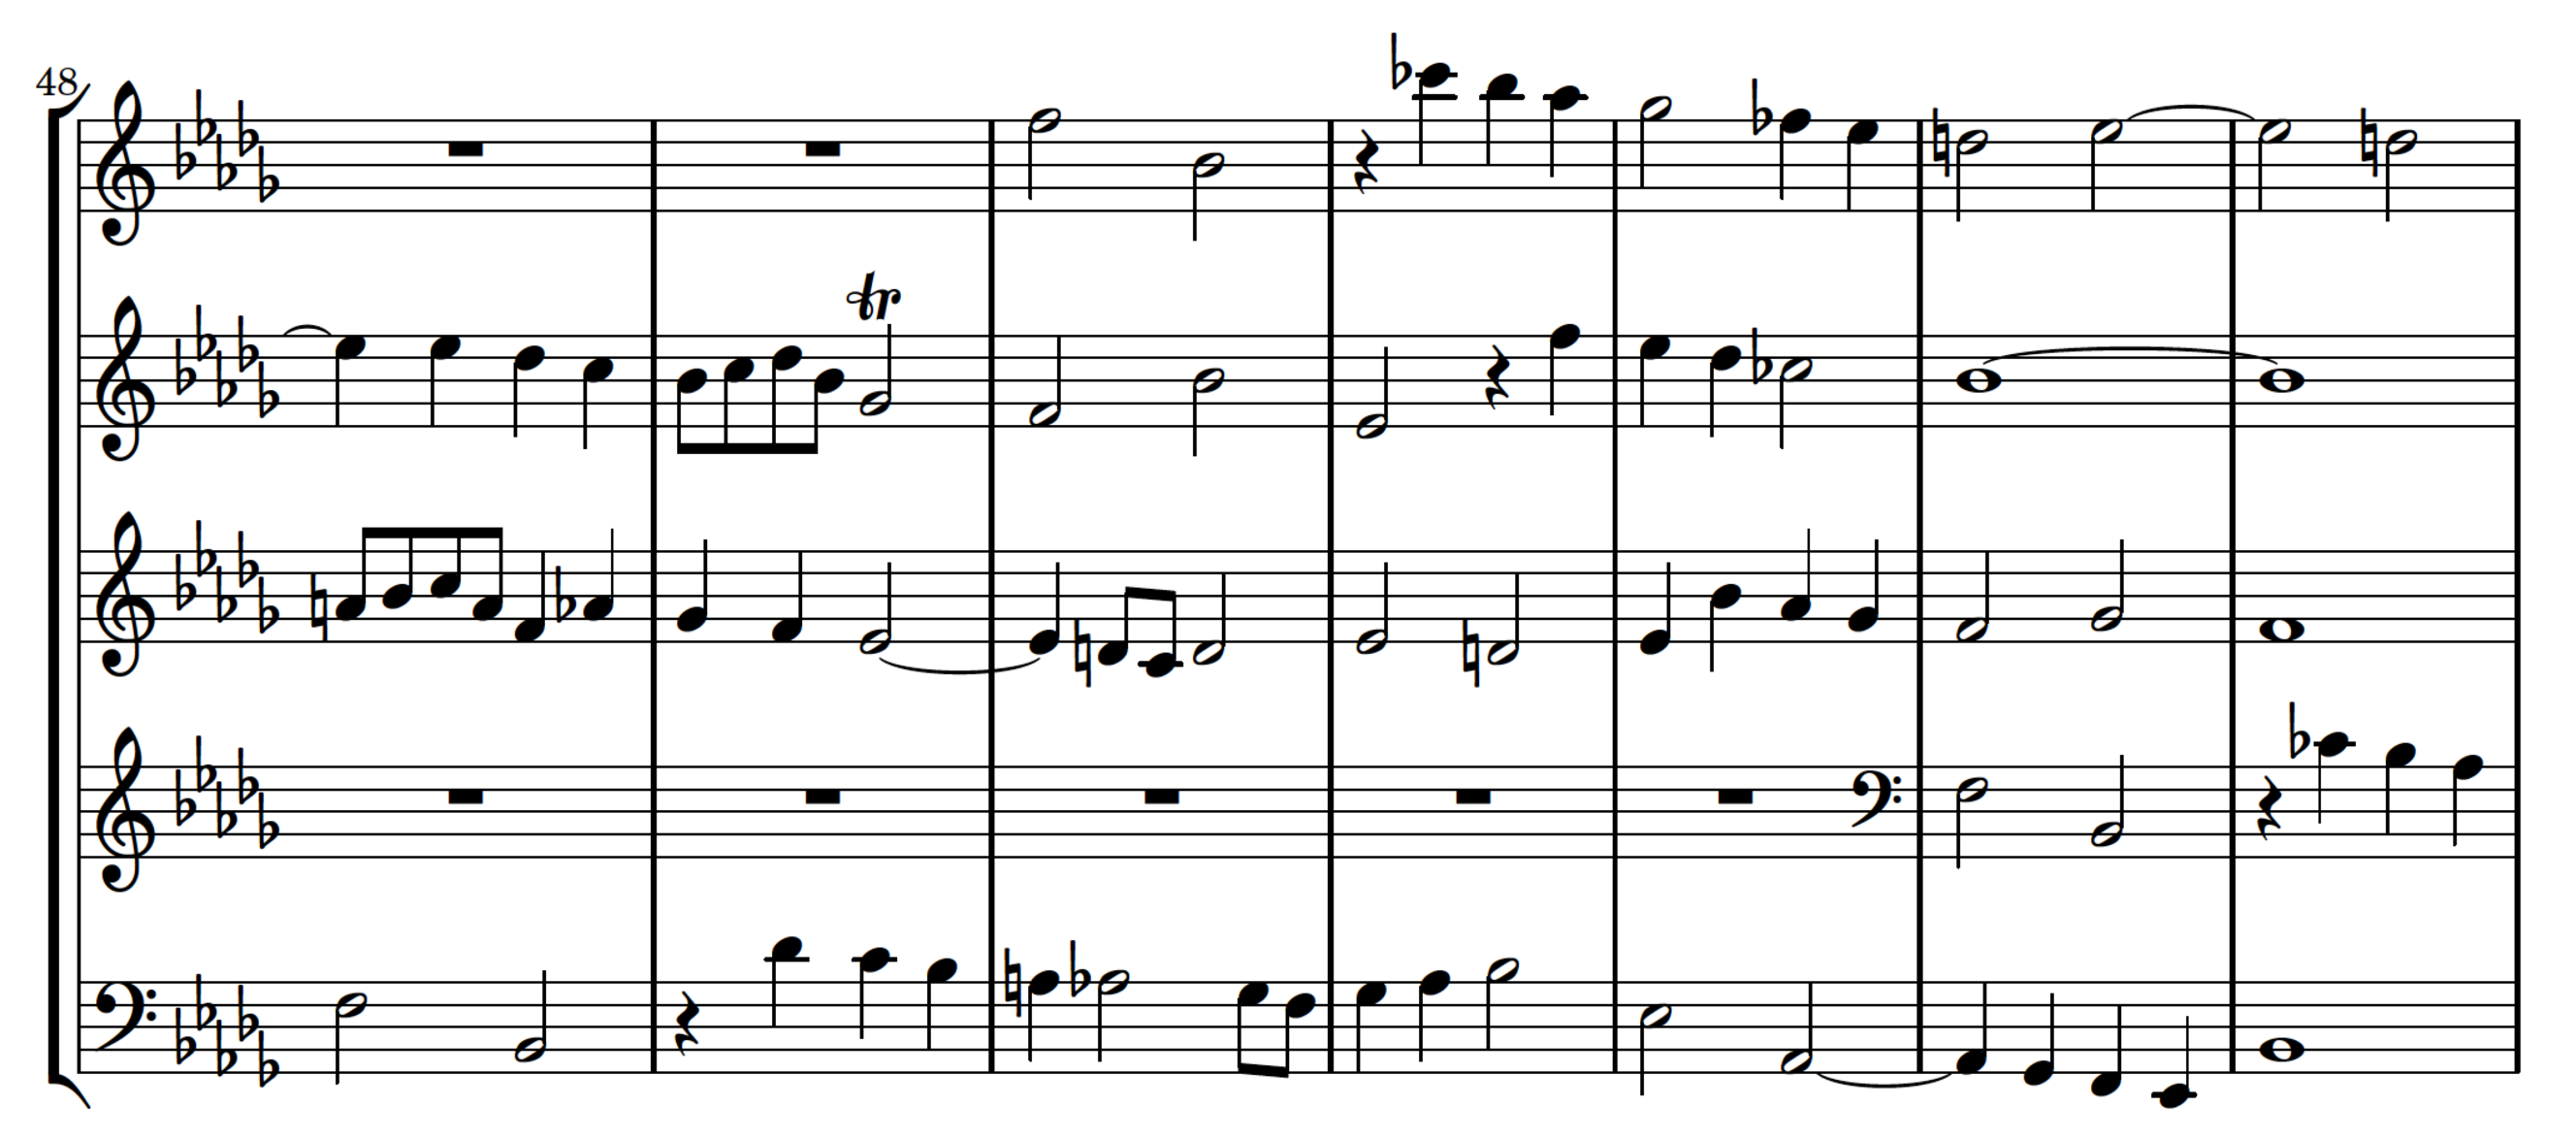 Excerpt from Bach's Fugue No. 22 in Bb Minor, BWV 867